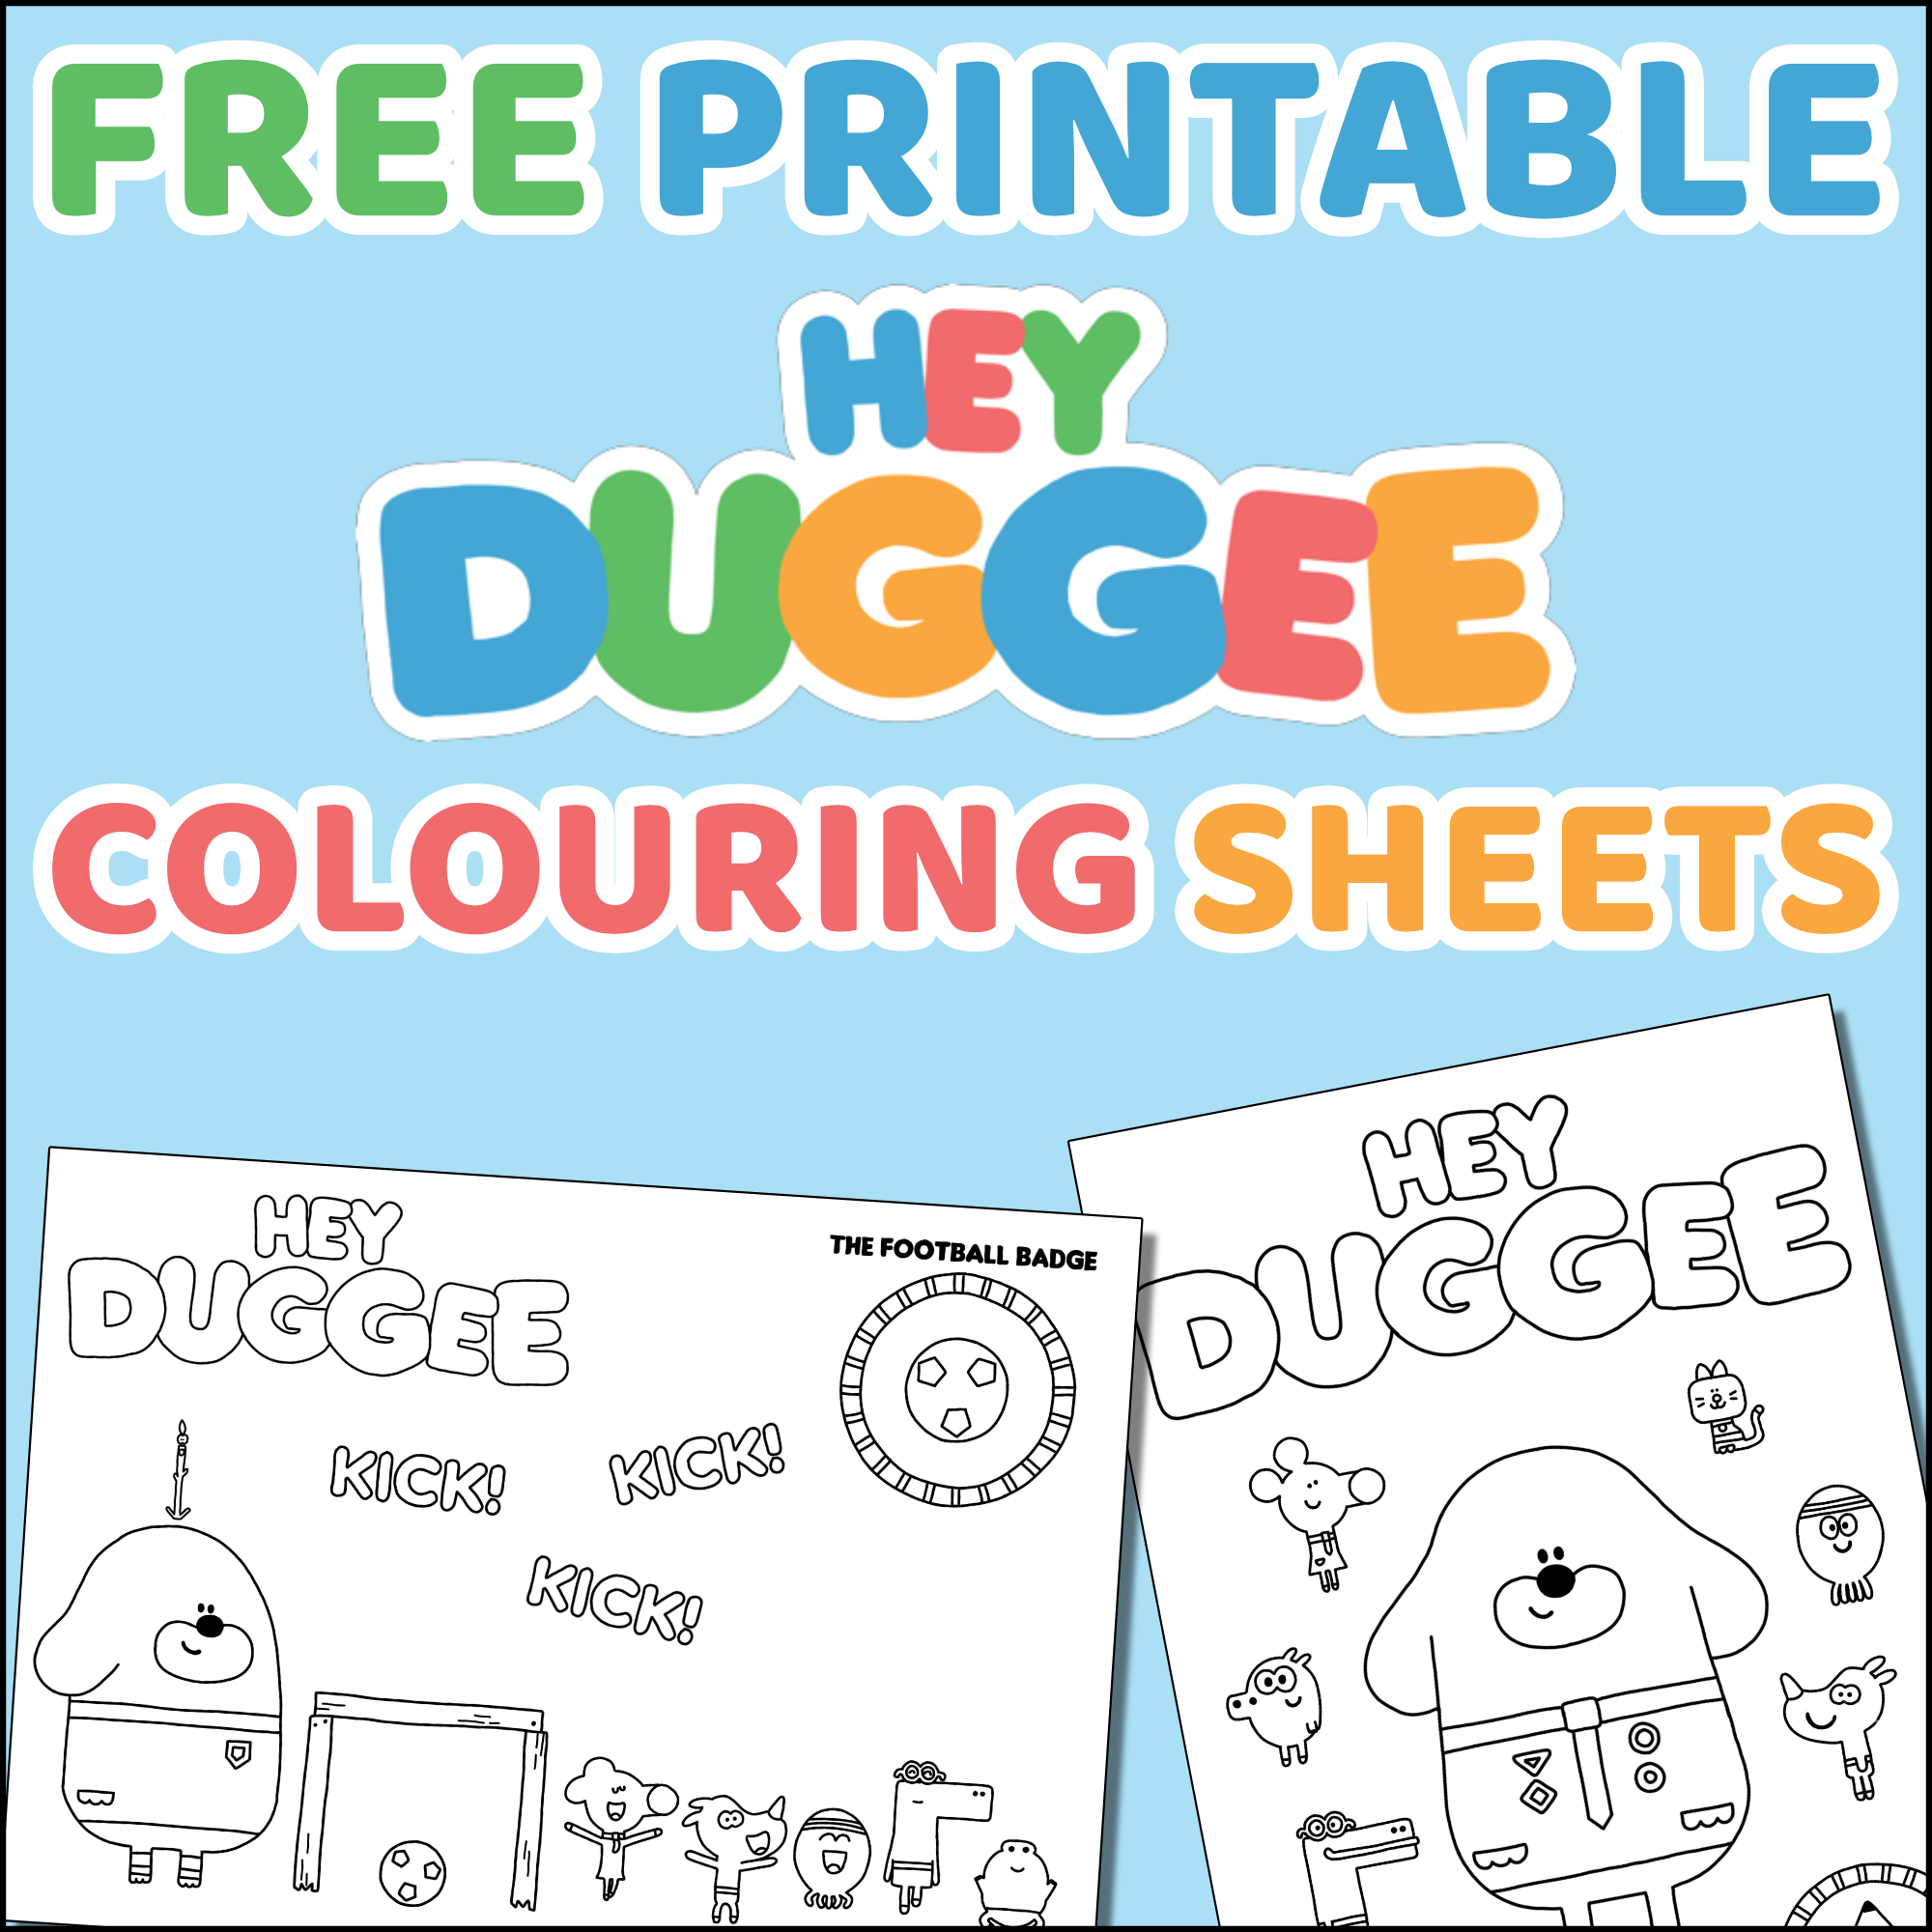 hey duggee coloring pages Hey Duggee Colouring Sheets   Free Printable ⋆ Mama Geek hey duggee coloring pages